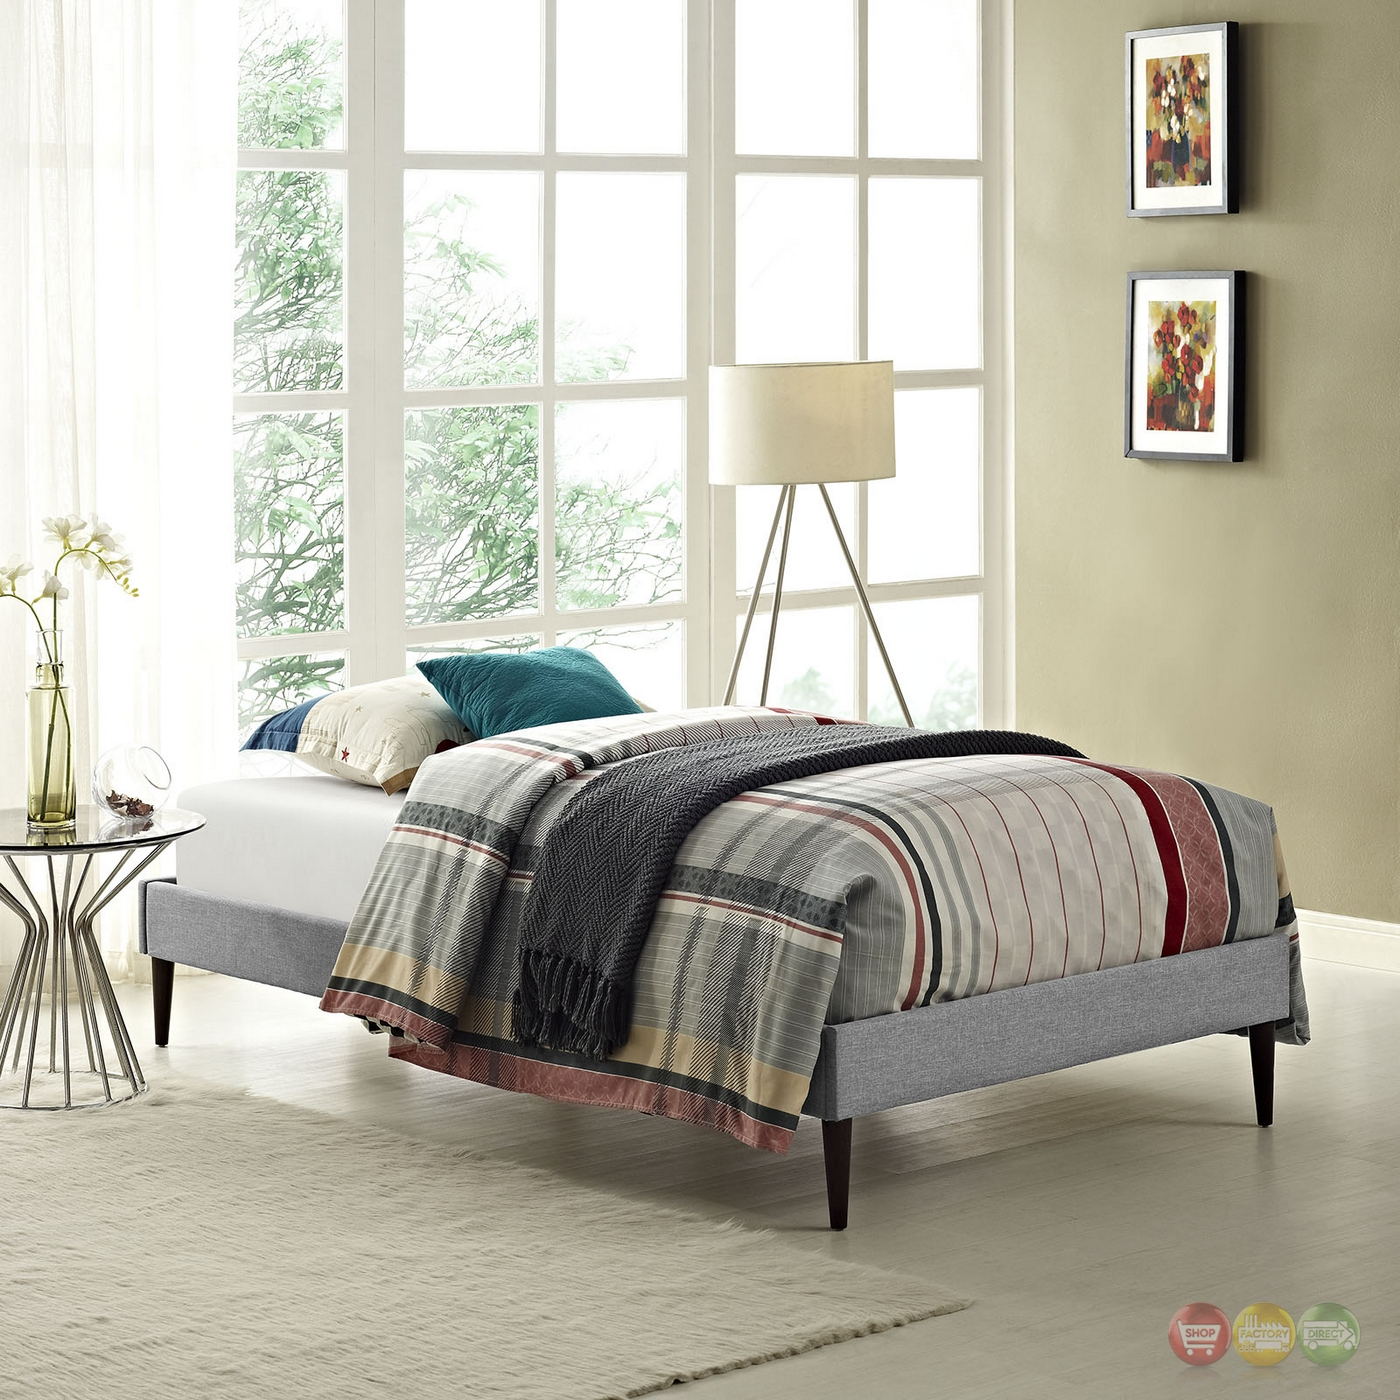 Sherry Upholstered Fabric Twin Platform Bed Frame Light Gray